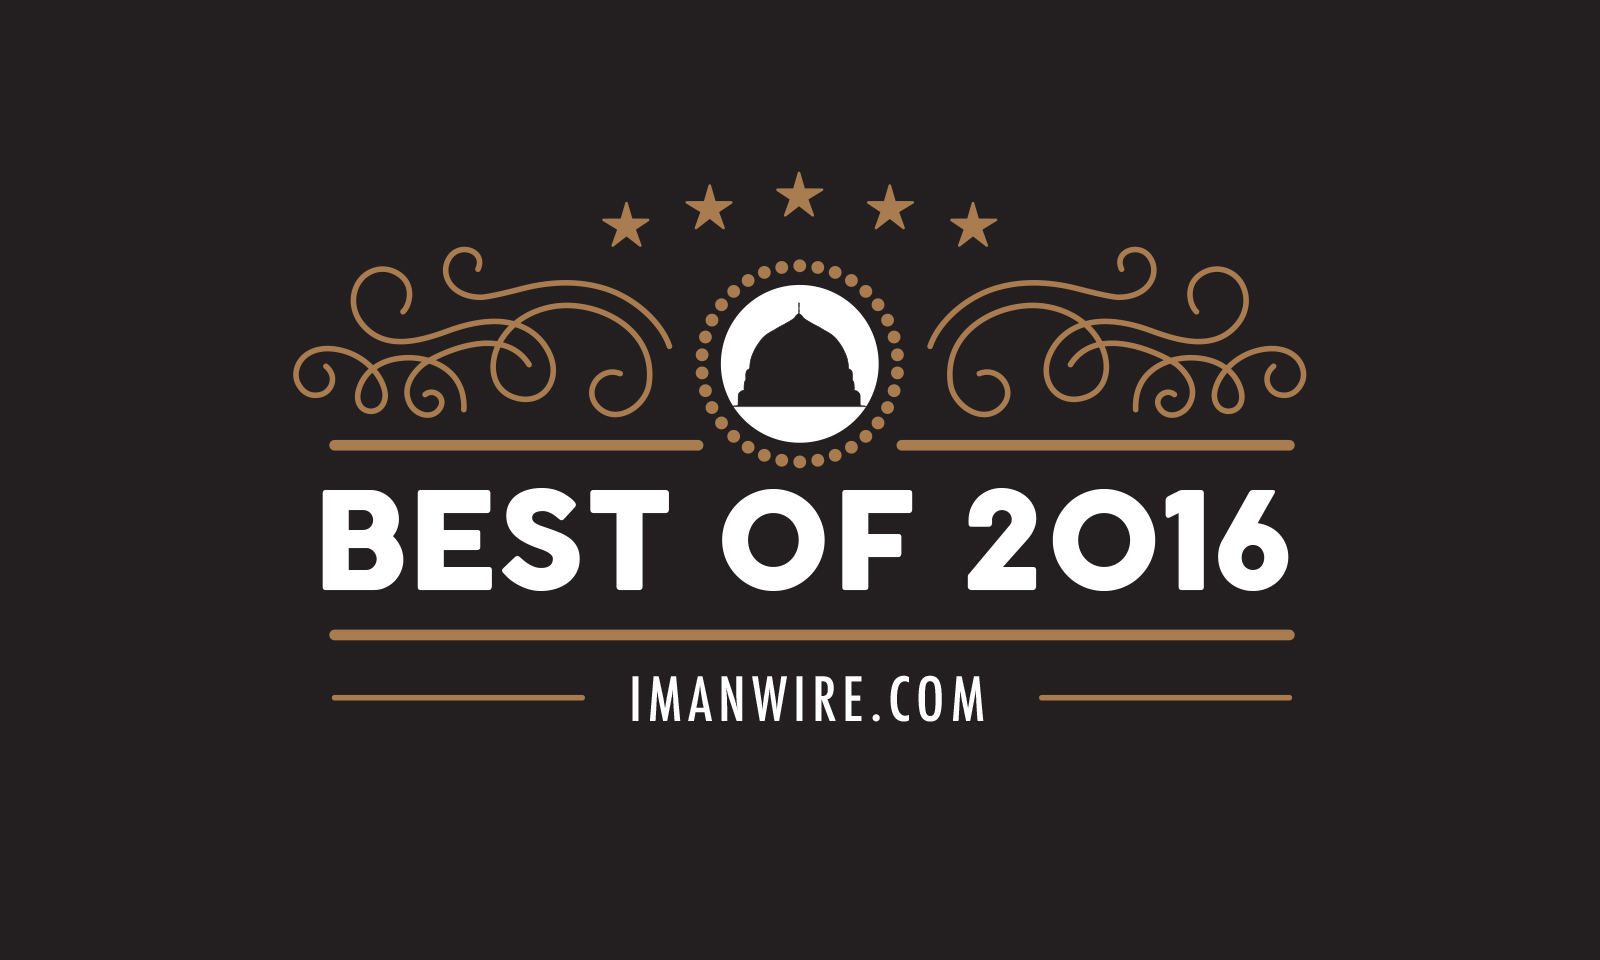 The Best of ImanWire in 2016